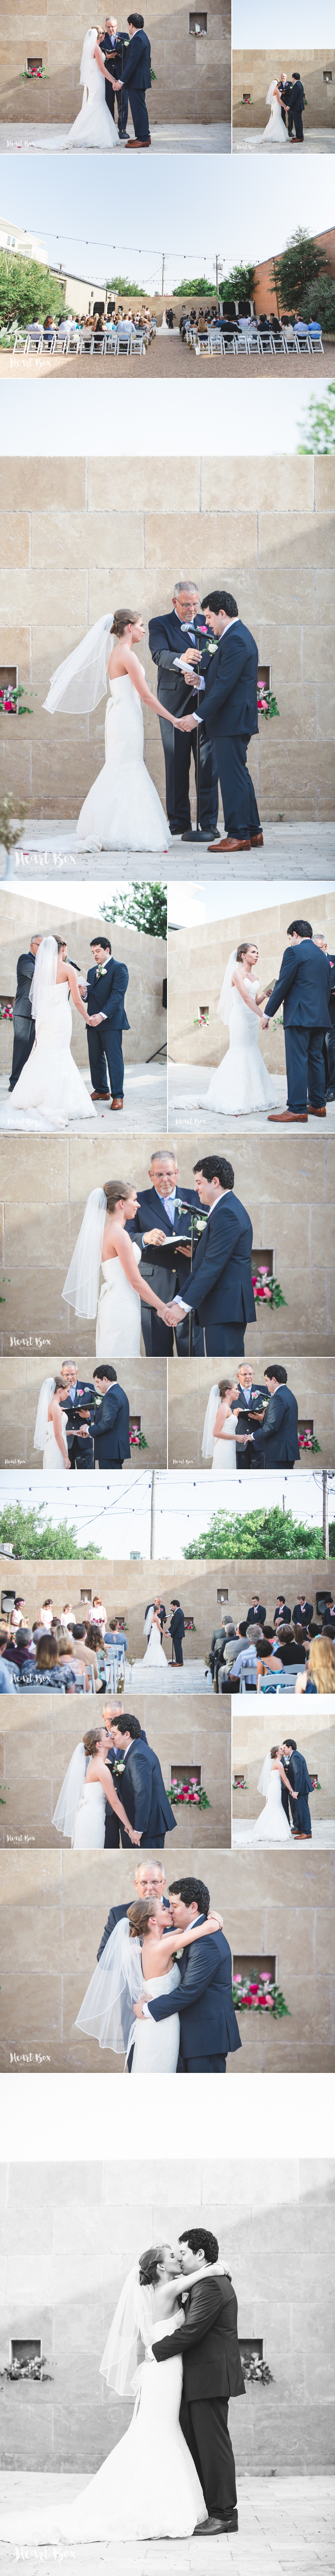 Towns Wedding Blog Collages 9.jpg